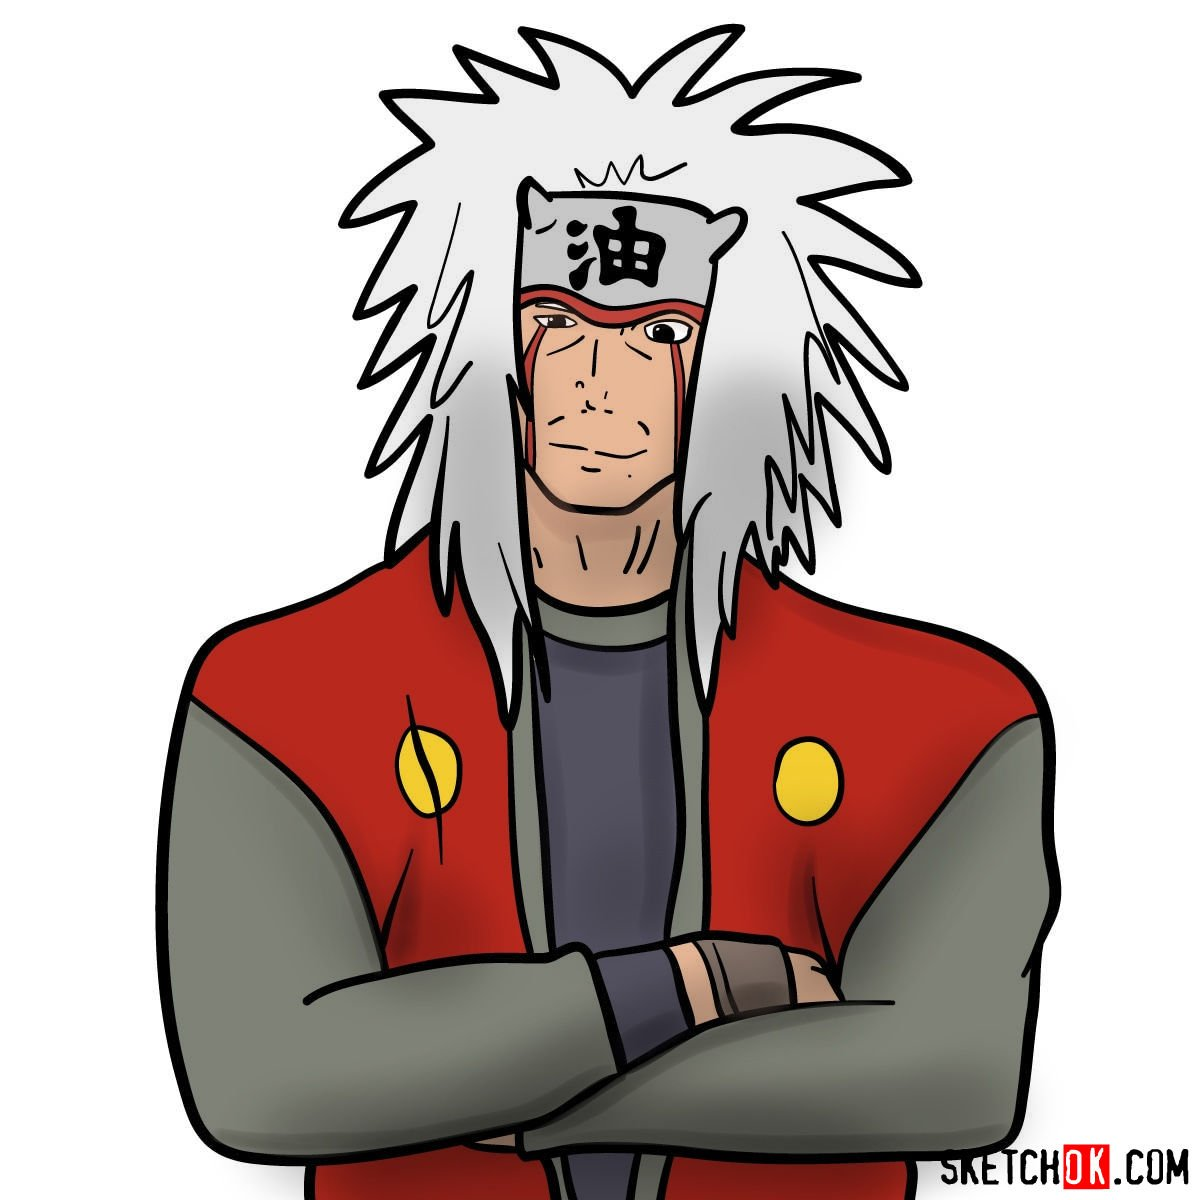 How to draw Jiraiya from Naruto anime